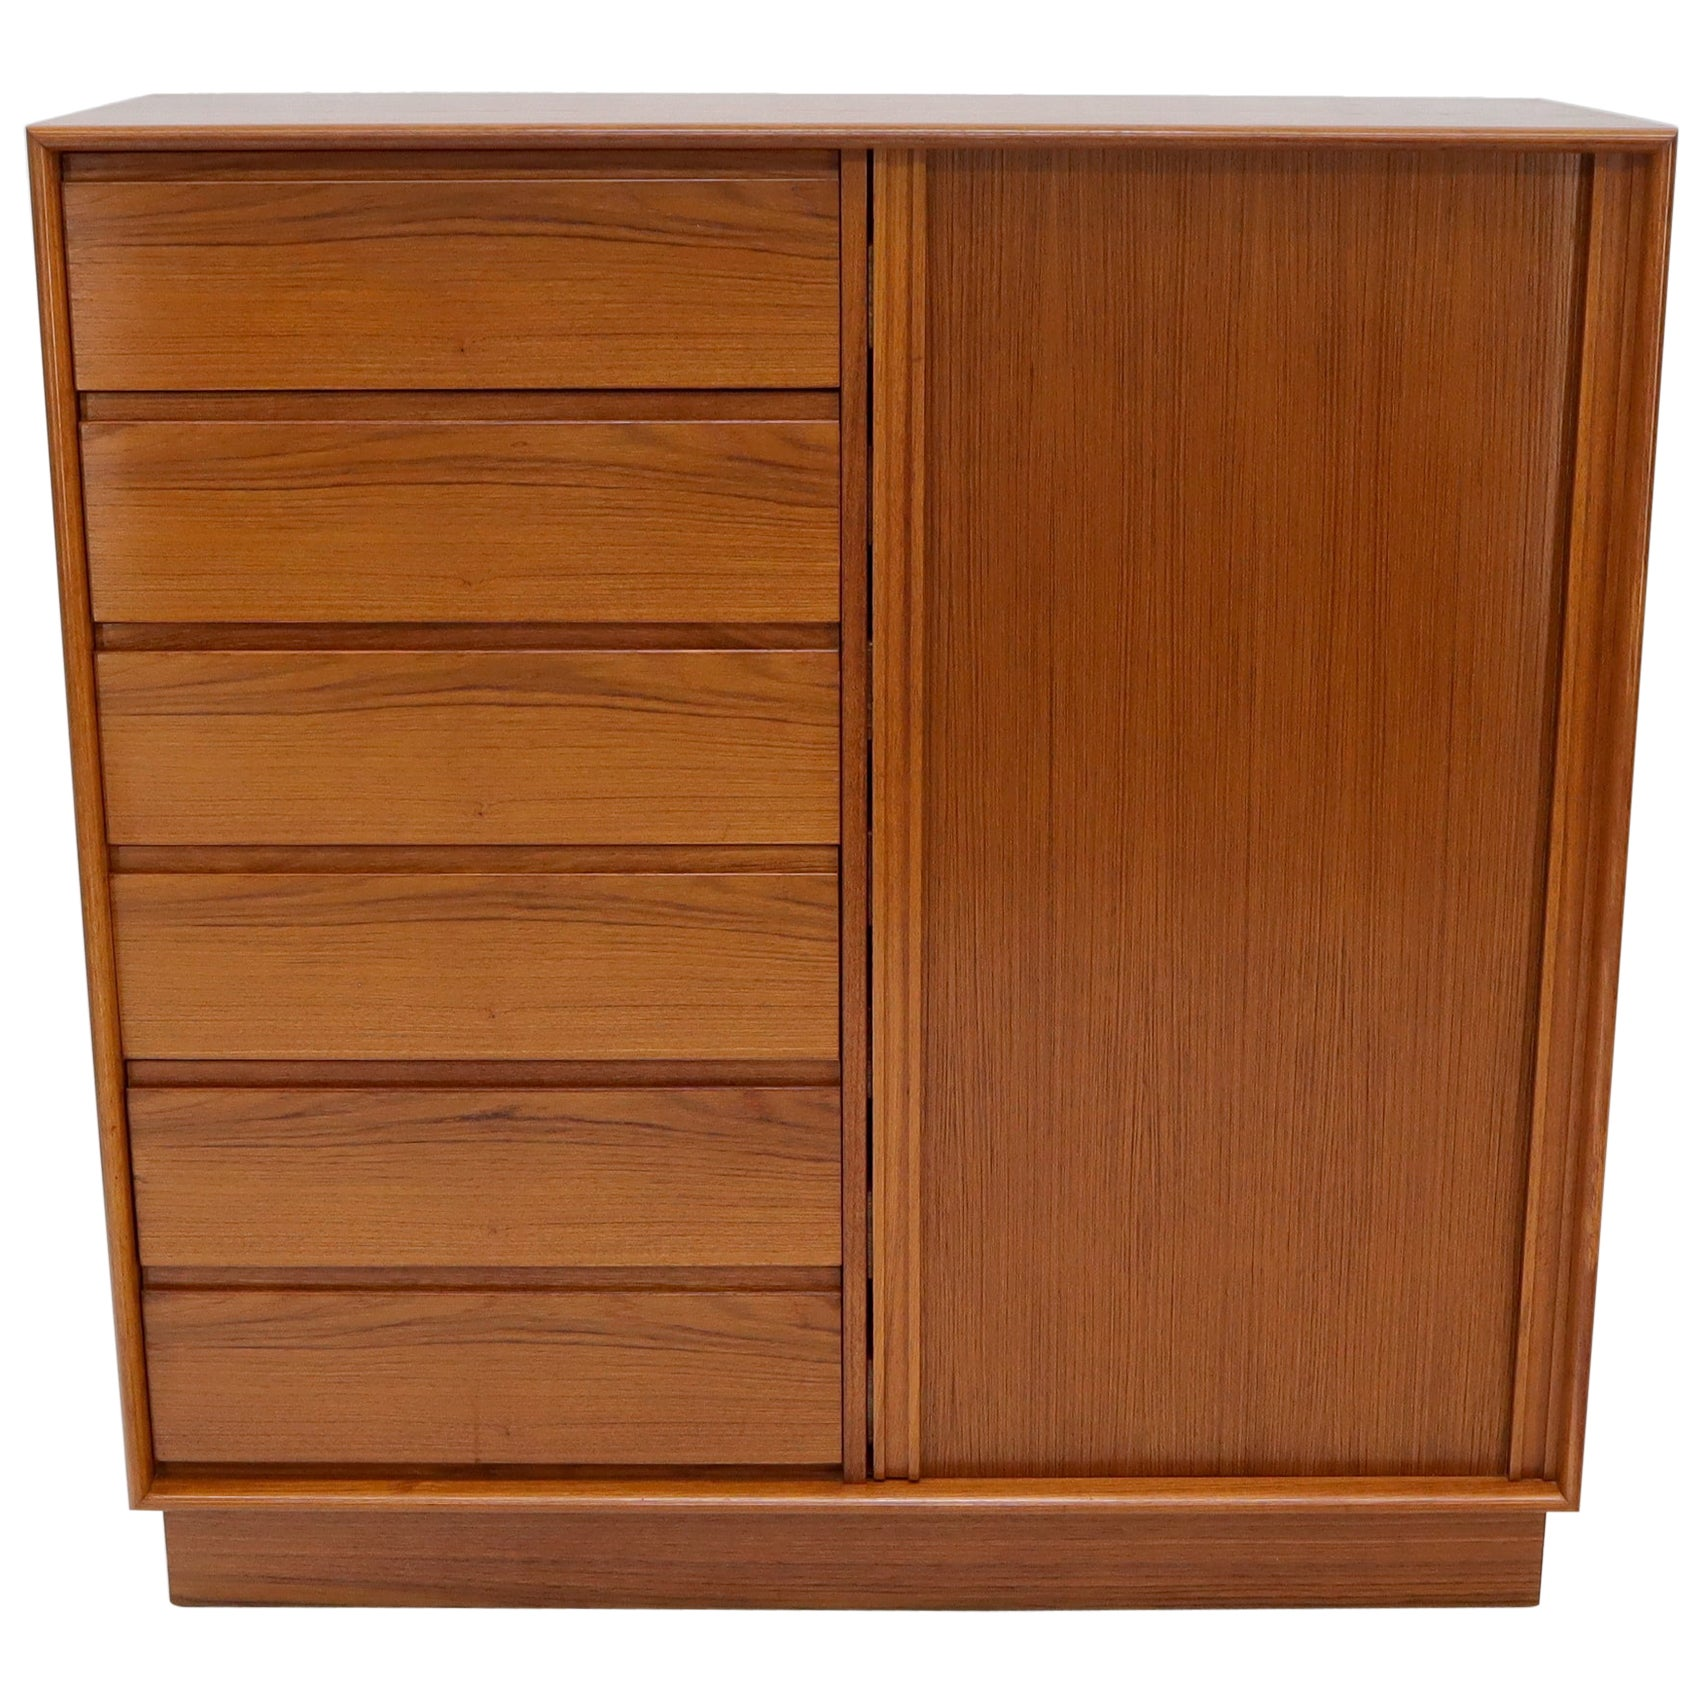 Tambour Door Side by Side 13 Drawers Large Teak Gentleman Chest Dresser Cabinet